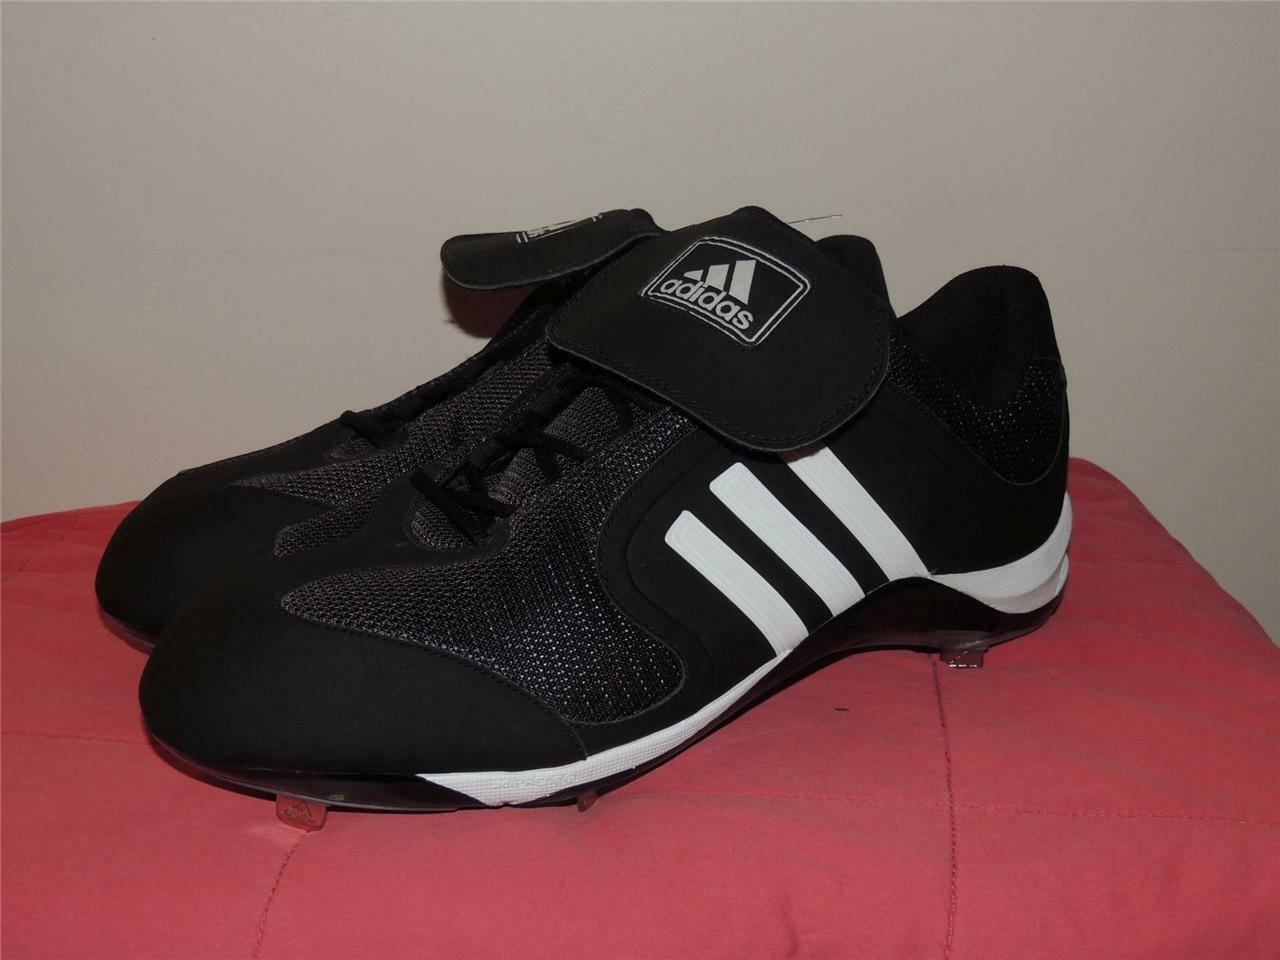 Adidas Excelsior 6 Low Metal Baseball Cleats Black/White Comfortable Brand discount